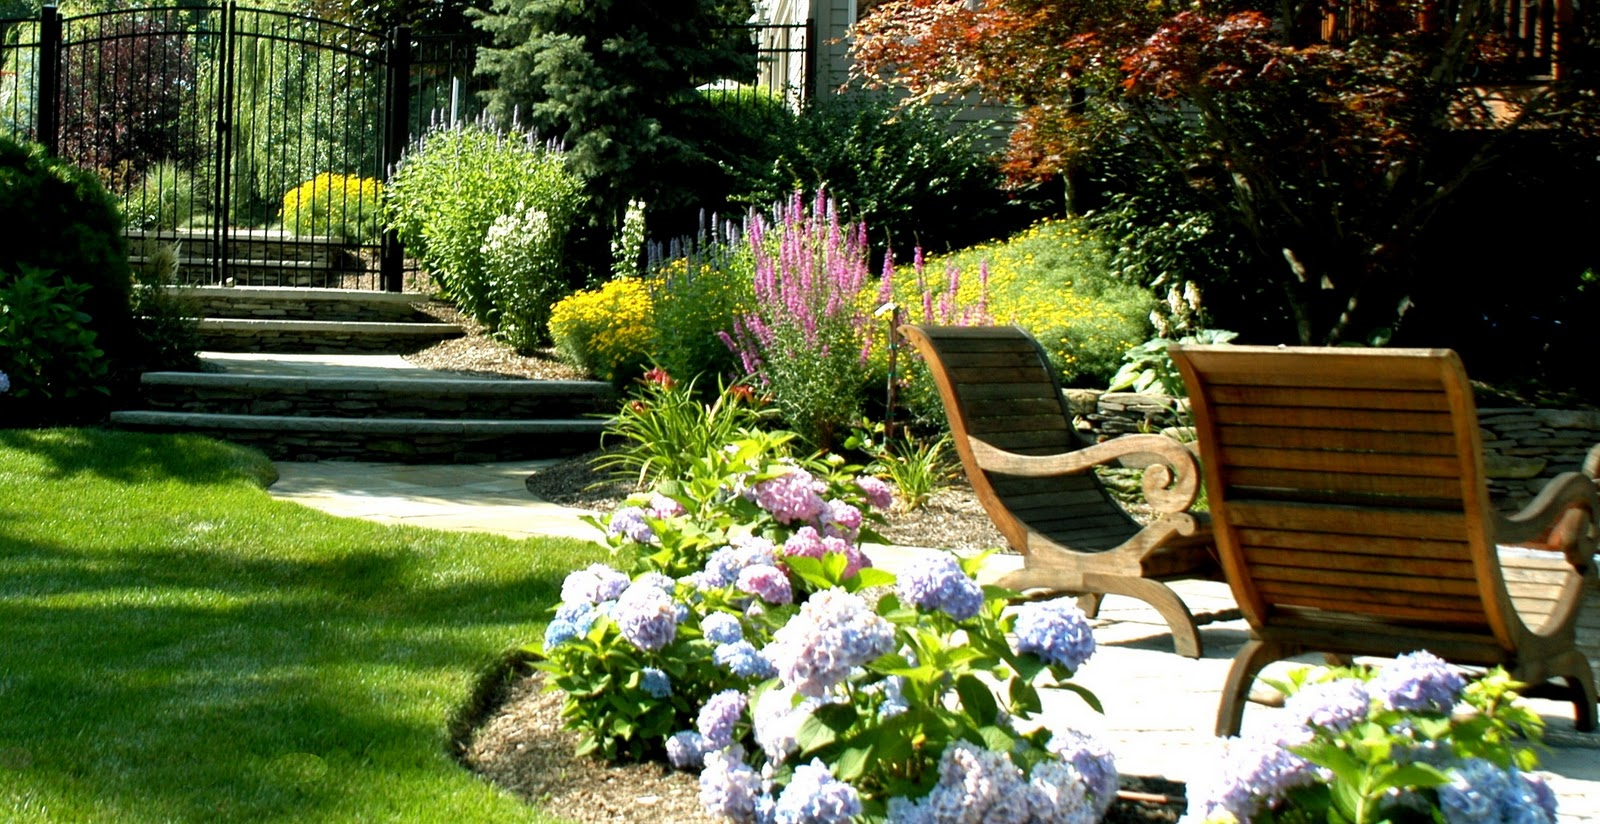 Hightechlandscapes new jersey landscape design for Top garden designers